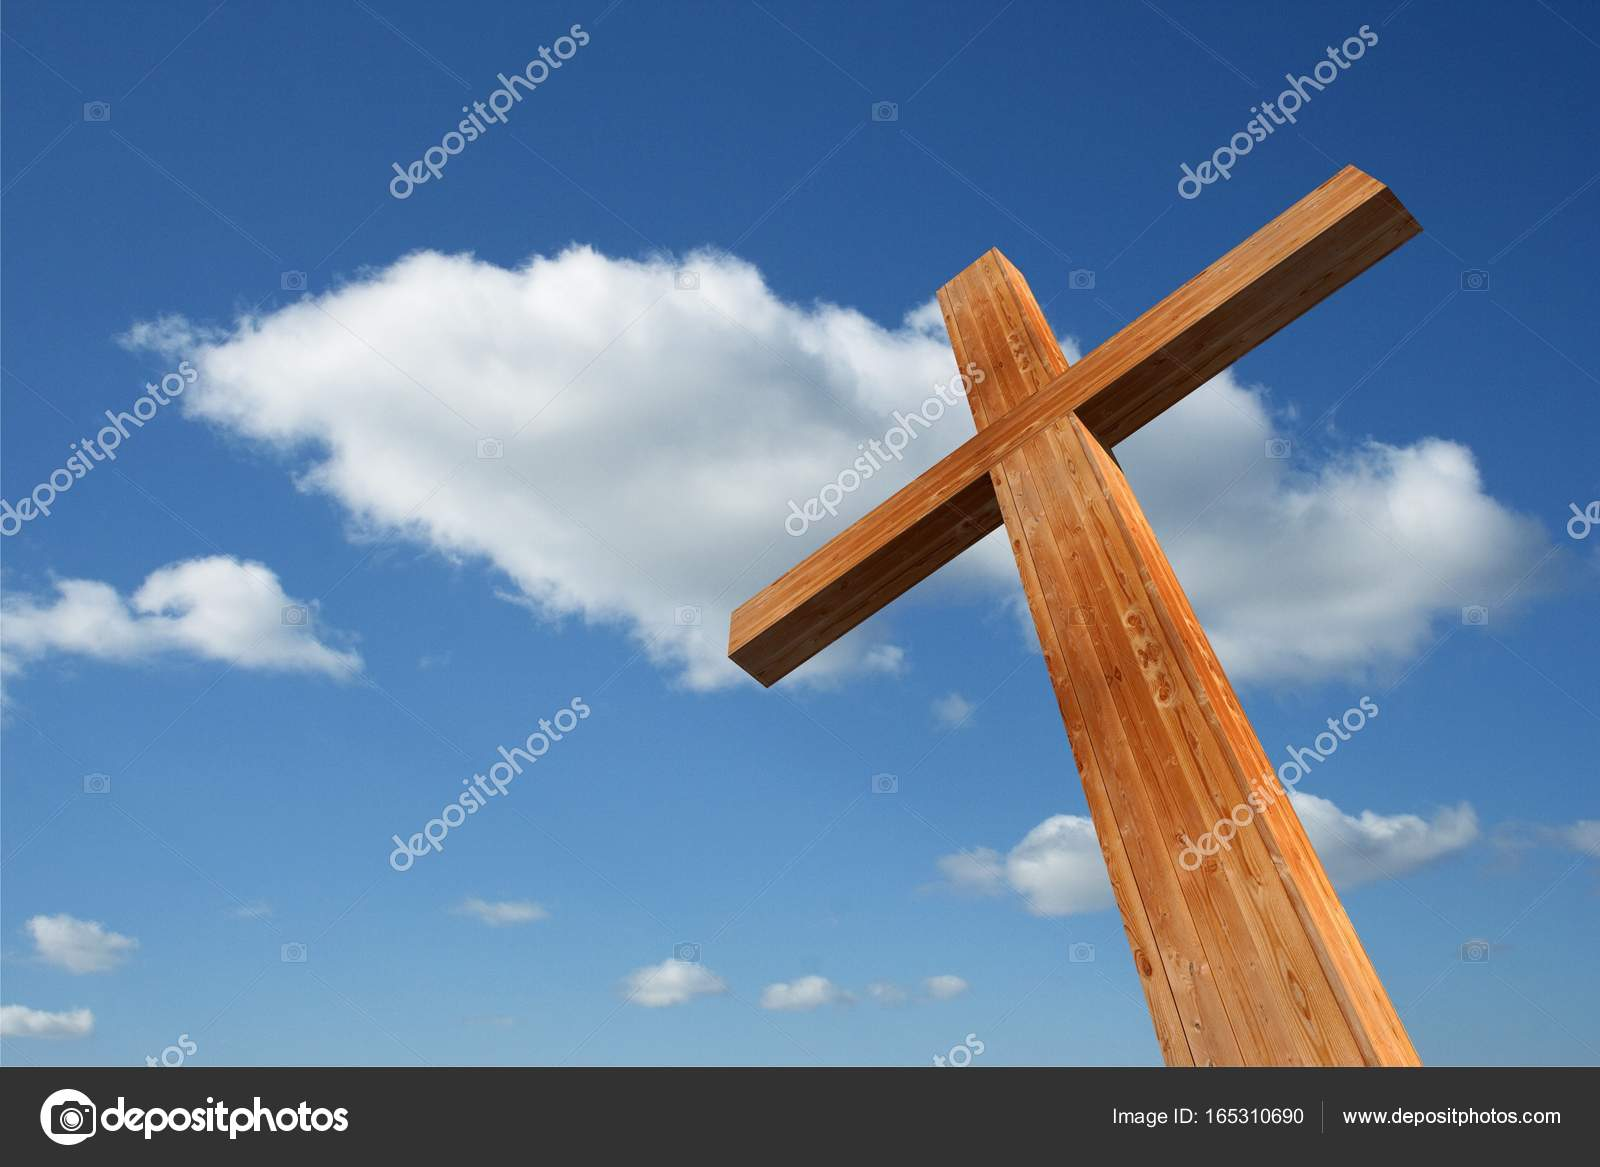 high resolution christian cross made of wood over a beautiful sky background  ideal for holiday